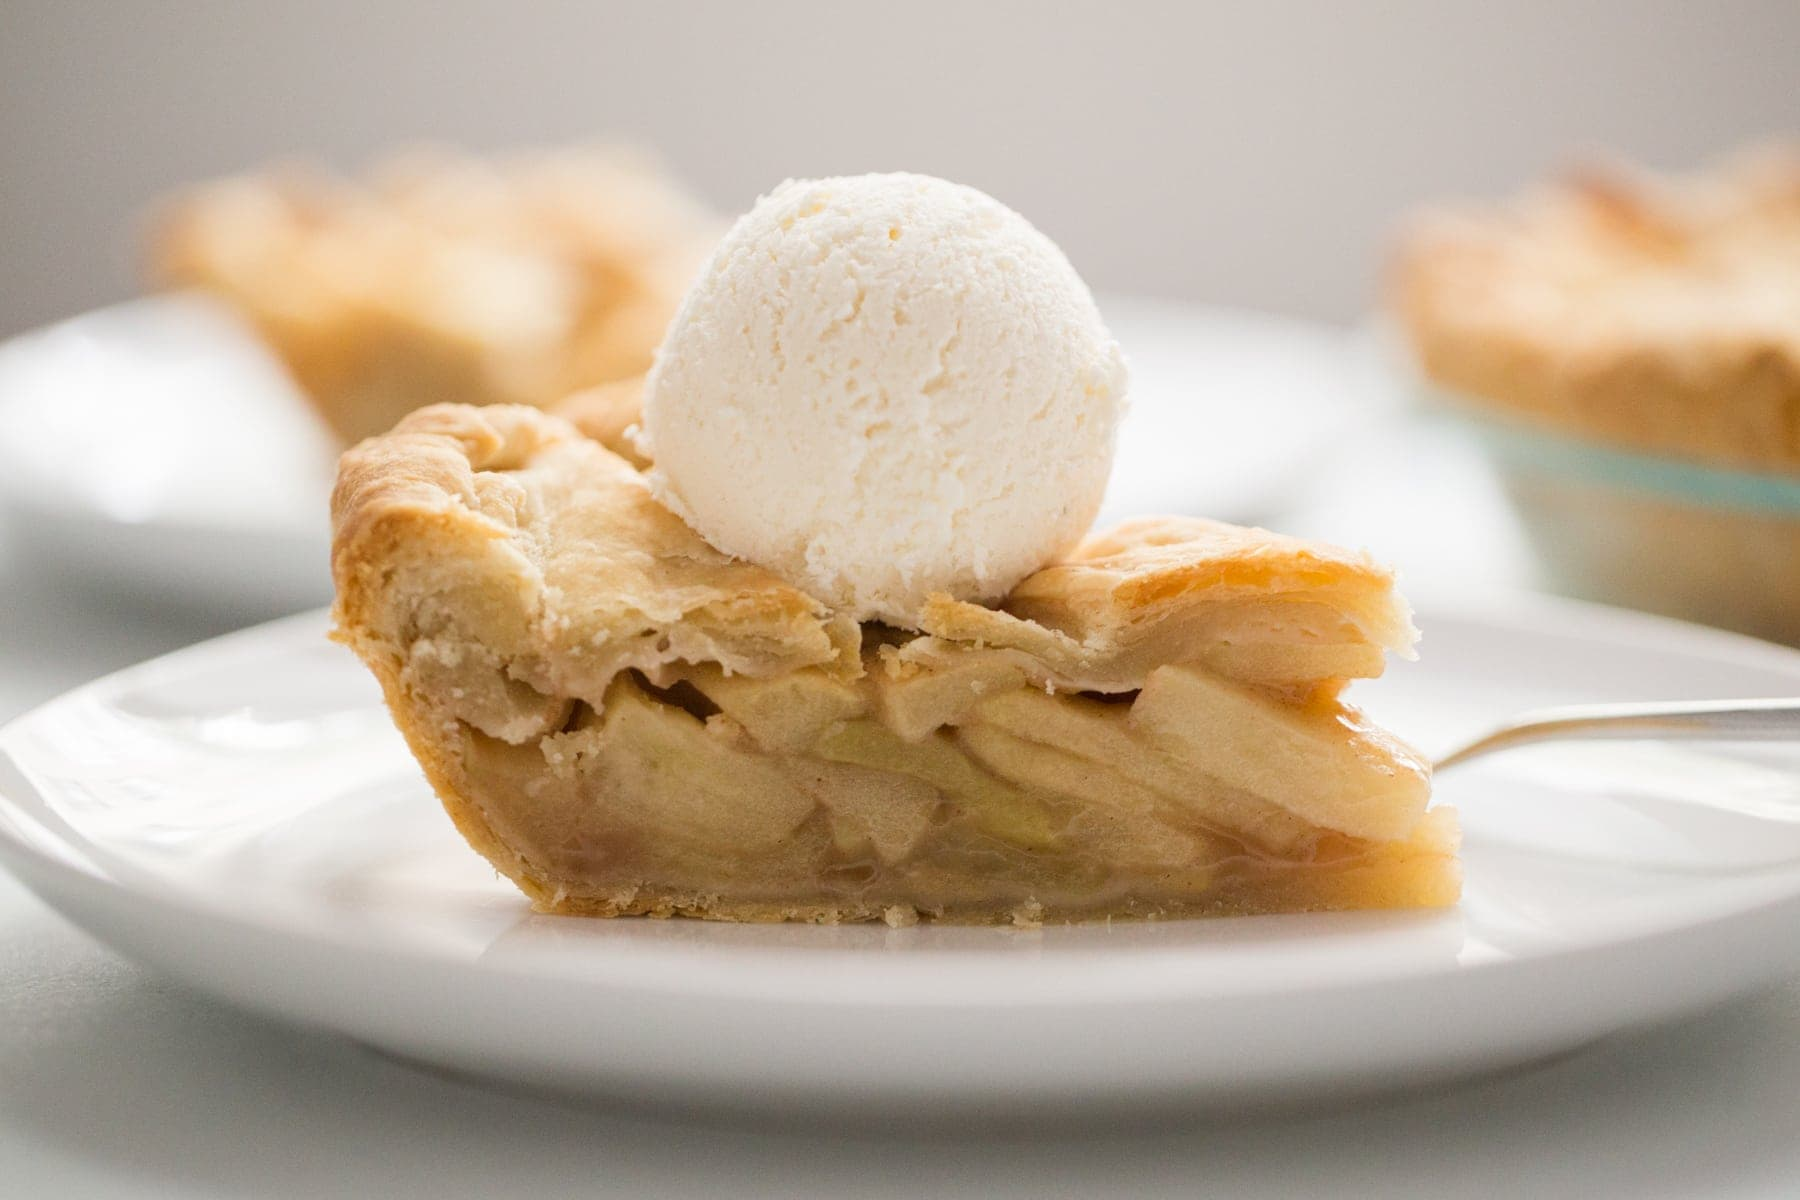 A slice of apple pie with vanilla ice cream on top